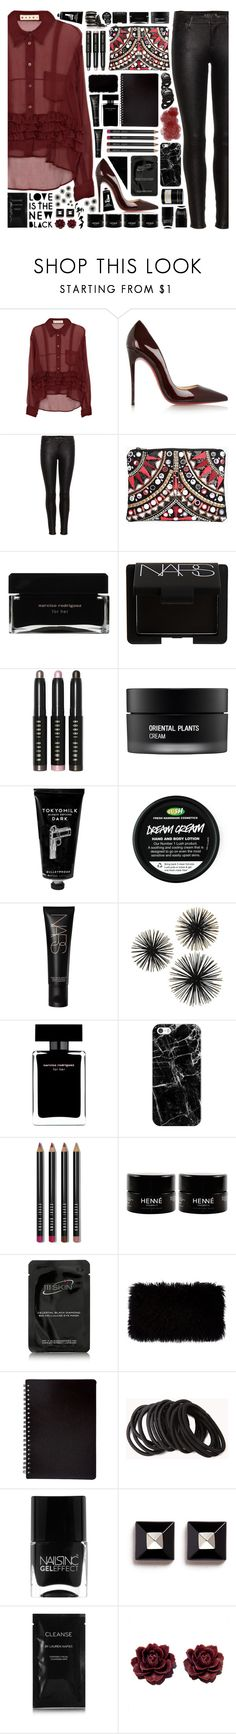 """""""2058 // P e r c l e v e i t e"""" by arierrefatir ❤ liked on Polyvore featuring Marni, Christian Louboutin, 7 For All Mankind, Boohoo, Narciso Rodriguez, NARS Cosmetics, Bobbi Brown Cosmetics, Koh Gen Do, TokyoMilk and Casetify"""